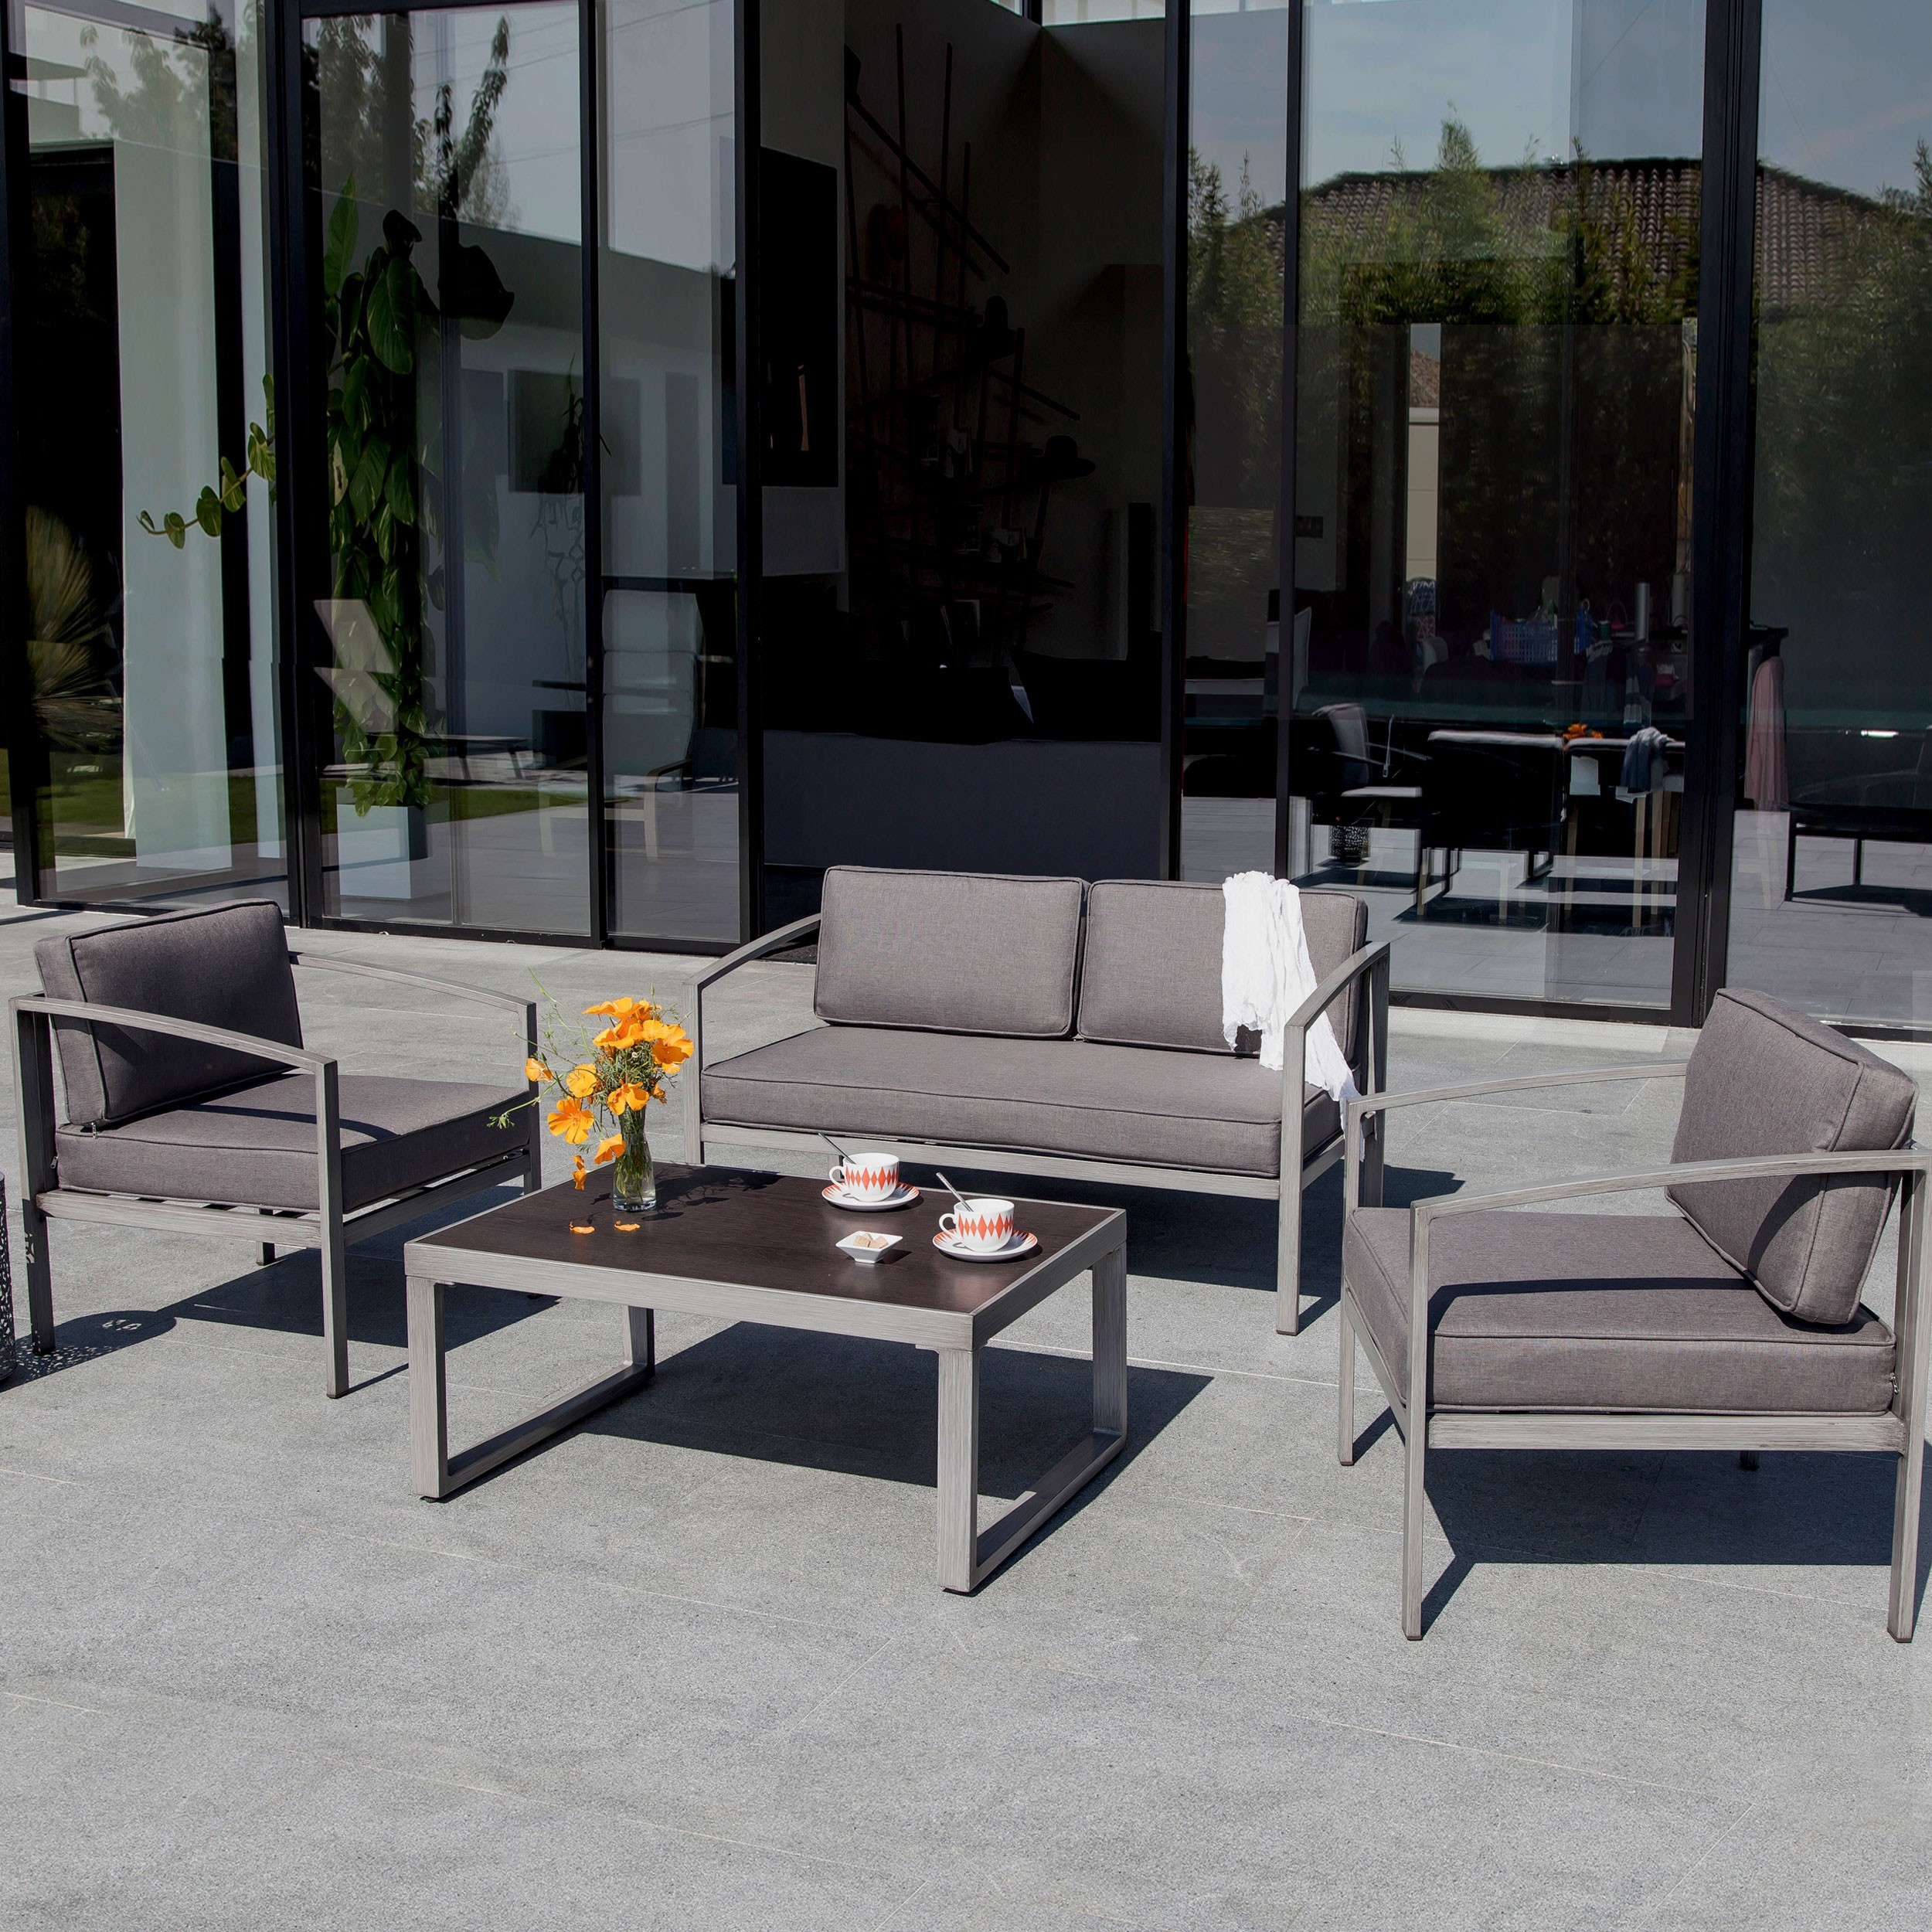 salon de jardin toluca gris installez nos salons de jardin toluca gris chez vous rdv d co. Black Bedroom Furniture Sets. Home Design Ideas